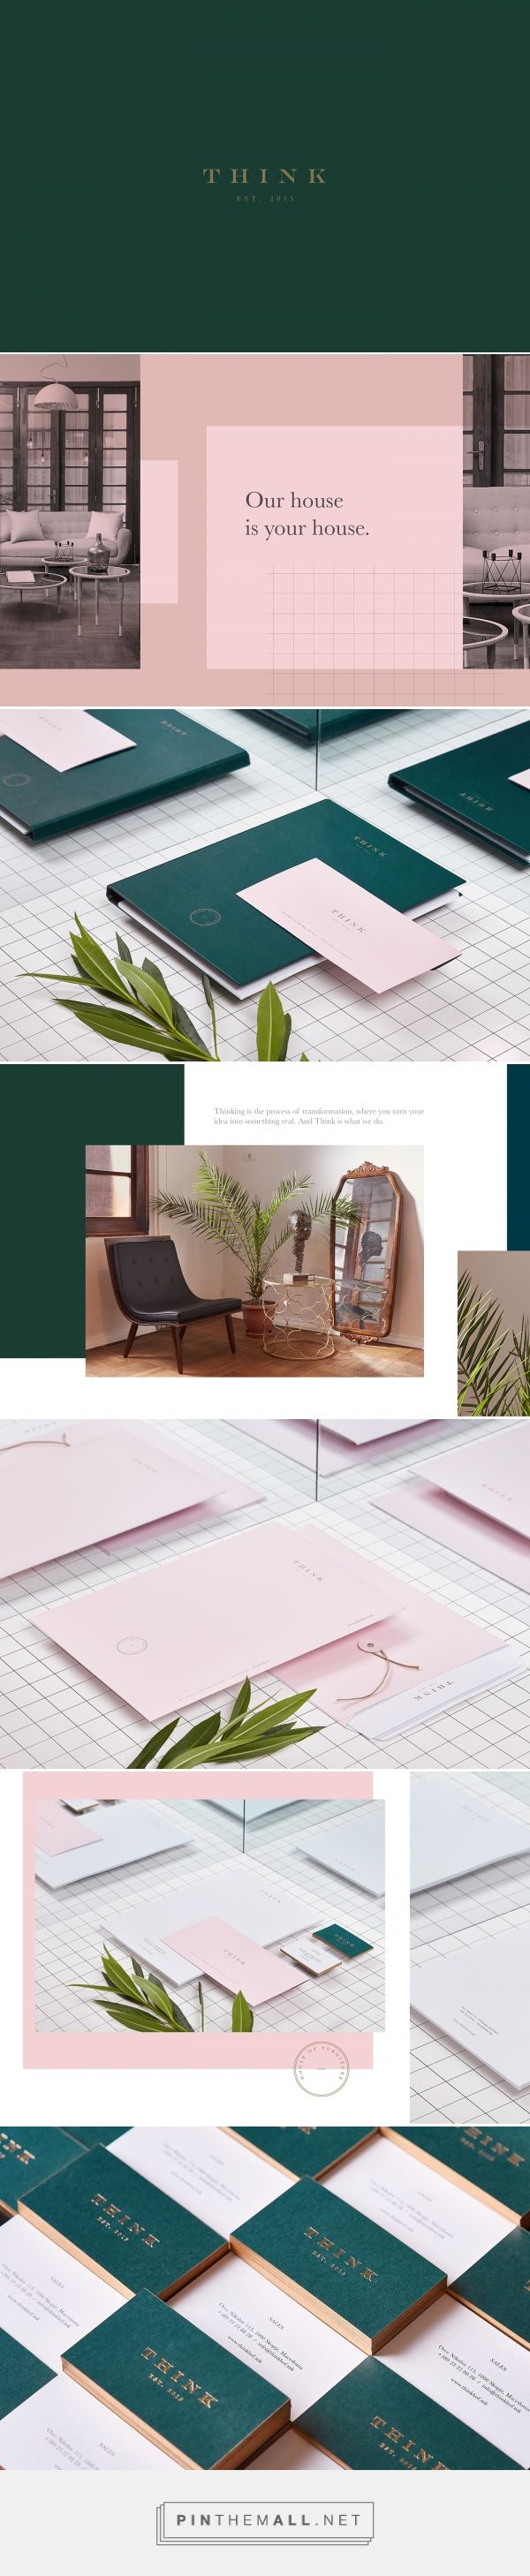 Think House of Furniture Branding by Miki Stefanoski  | Fivestar Branding Agency – Design and Branding Agency & Curated Inspiration Gallery